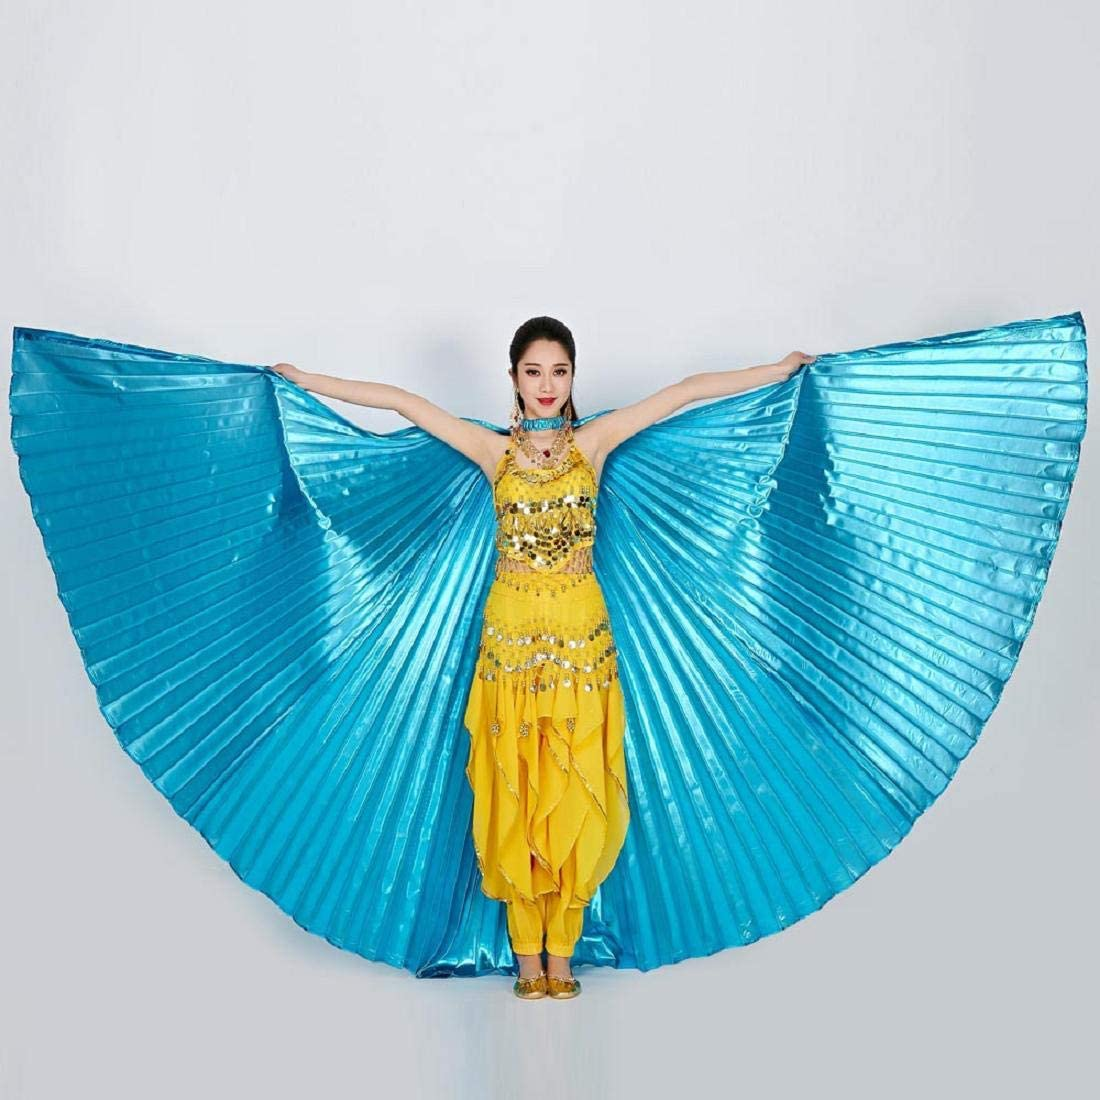 Yeefant Egypt Belly Wings Dancing Costume Belly Dance Accessories No Sticks Performance Clothing